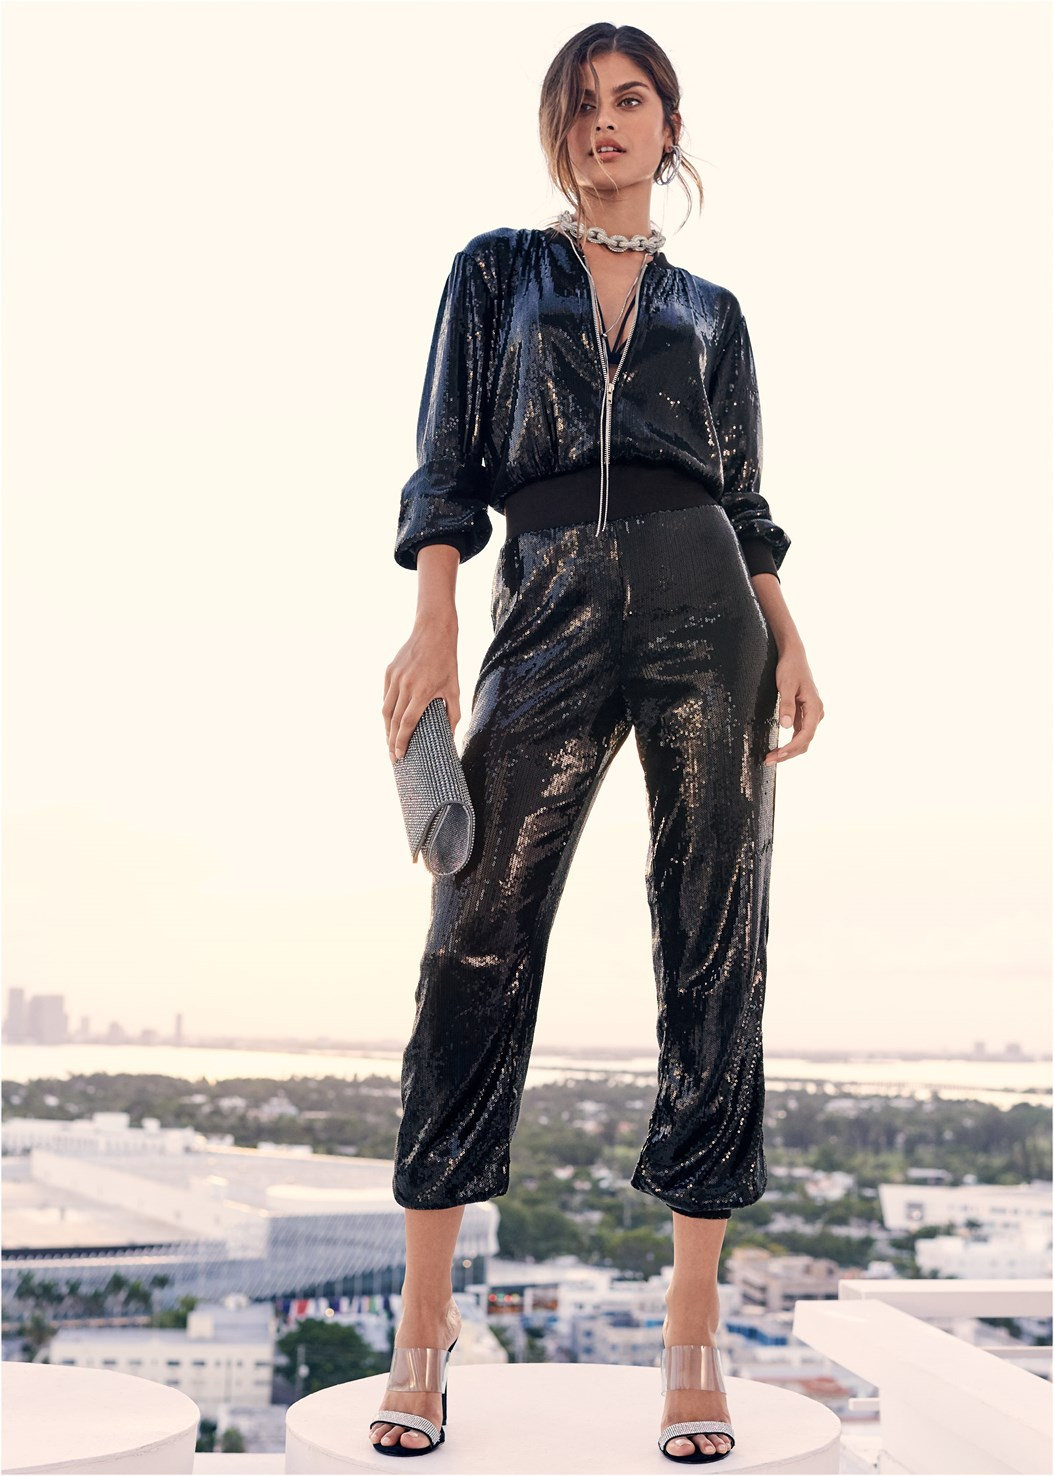 Sequin Jogger Jumpsuit,Chain Link Necklace,Rhinestone Clutch